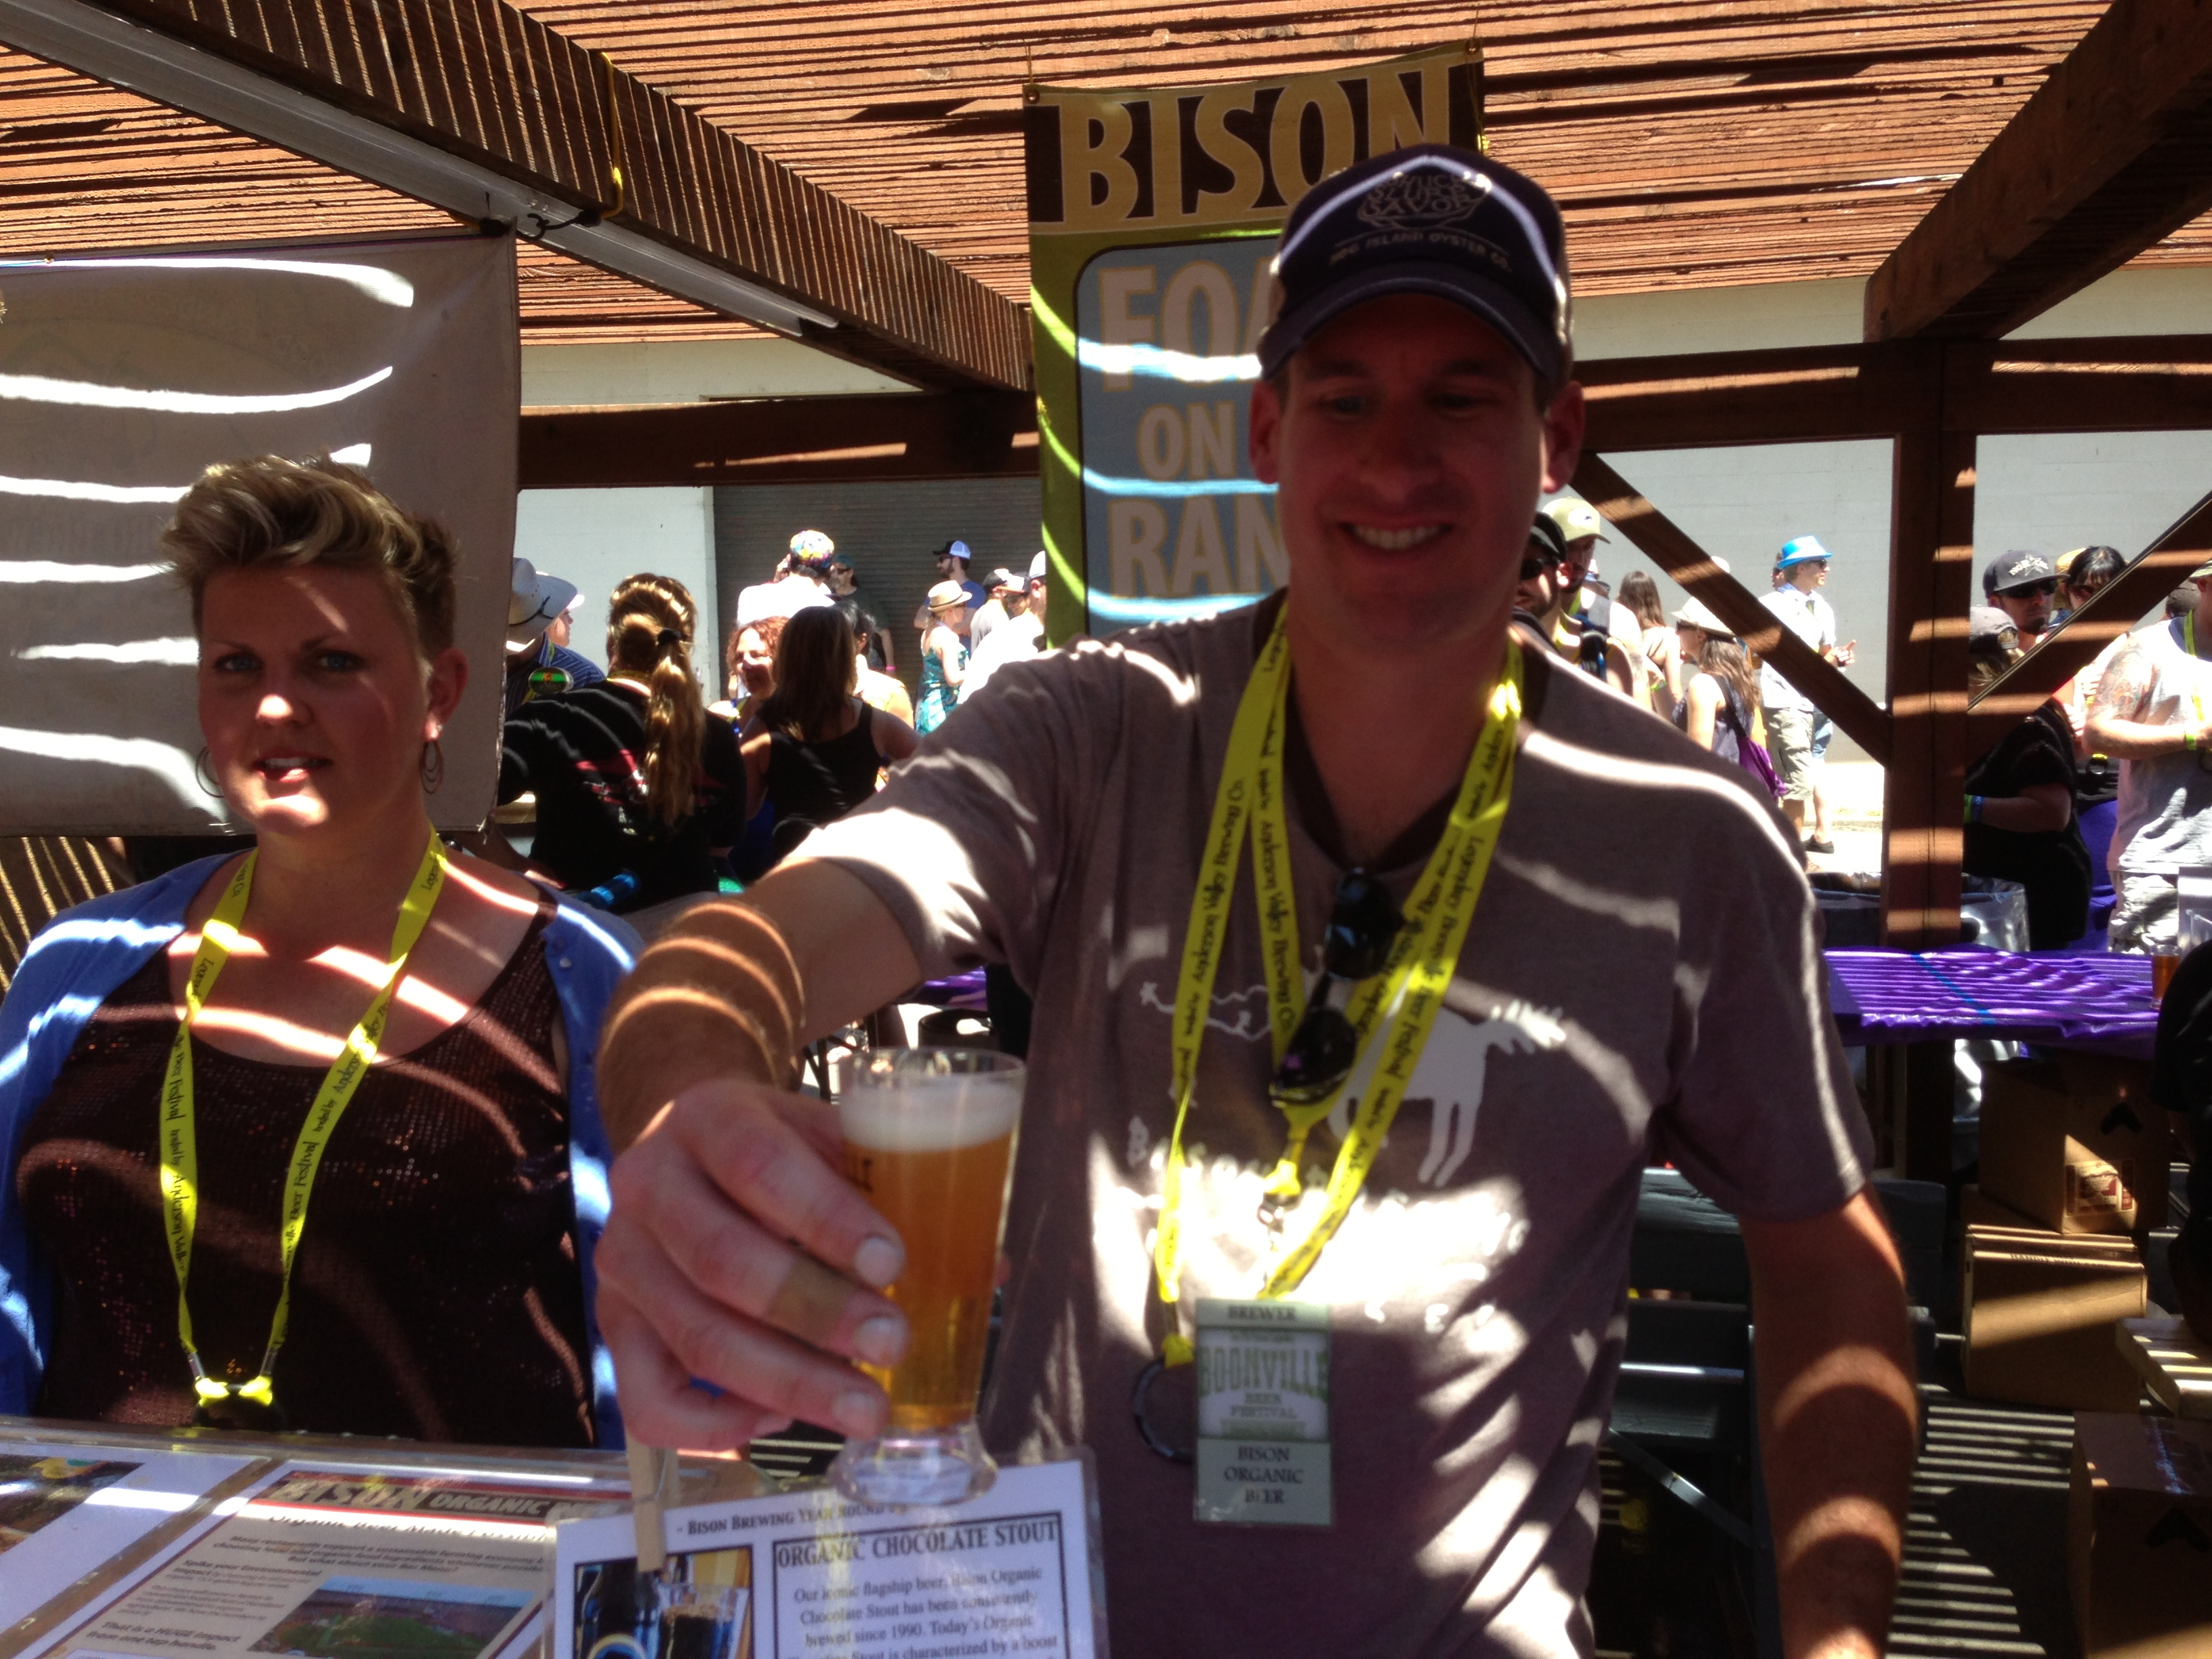 Bison owner-brewmaster Daniel Del Grande serves up a glass of his new Hop Cuvee at the 2013 Boonville Beer Fest